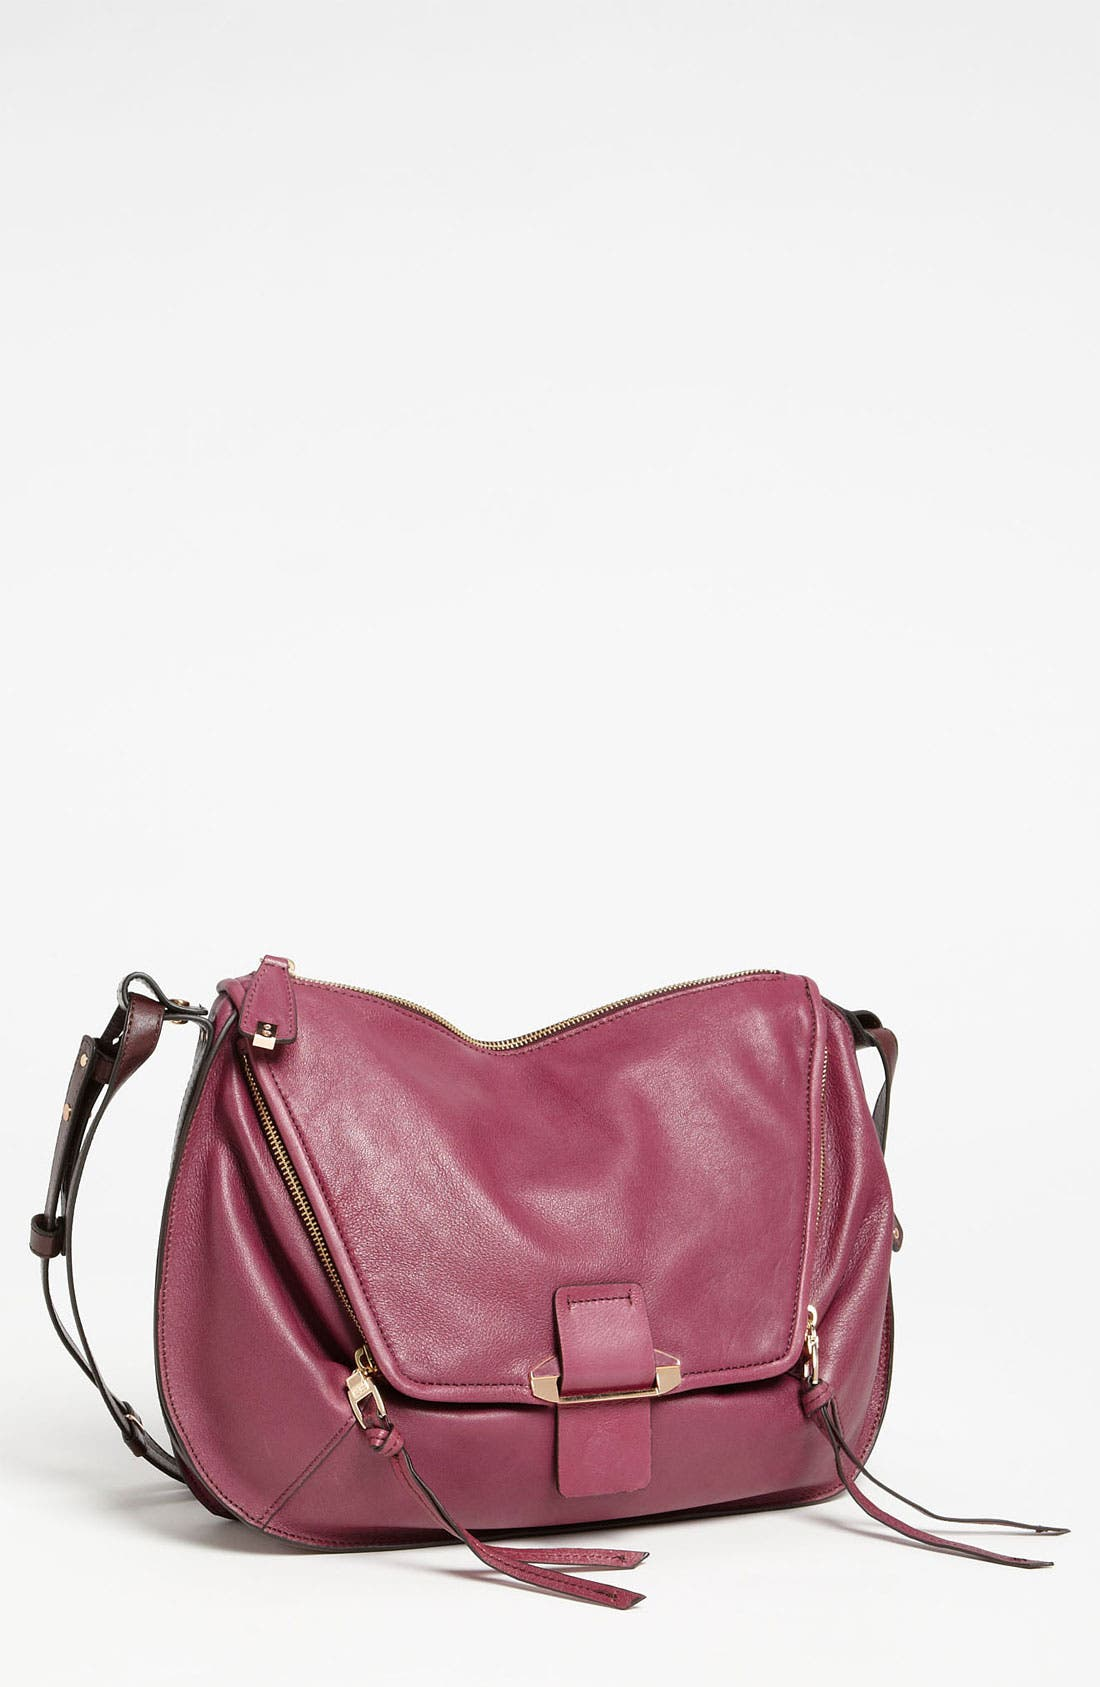 Main Image - Kooba 'Leroy' Crossbody Bag